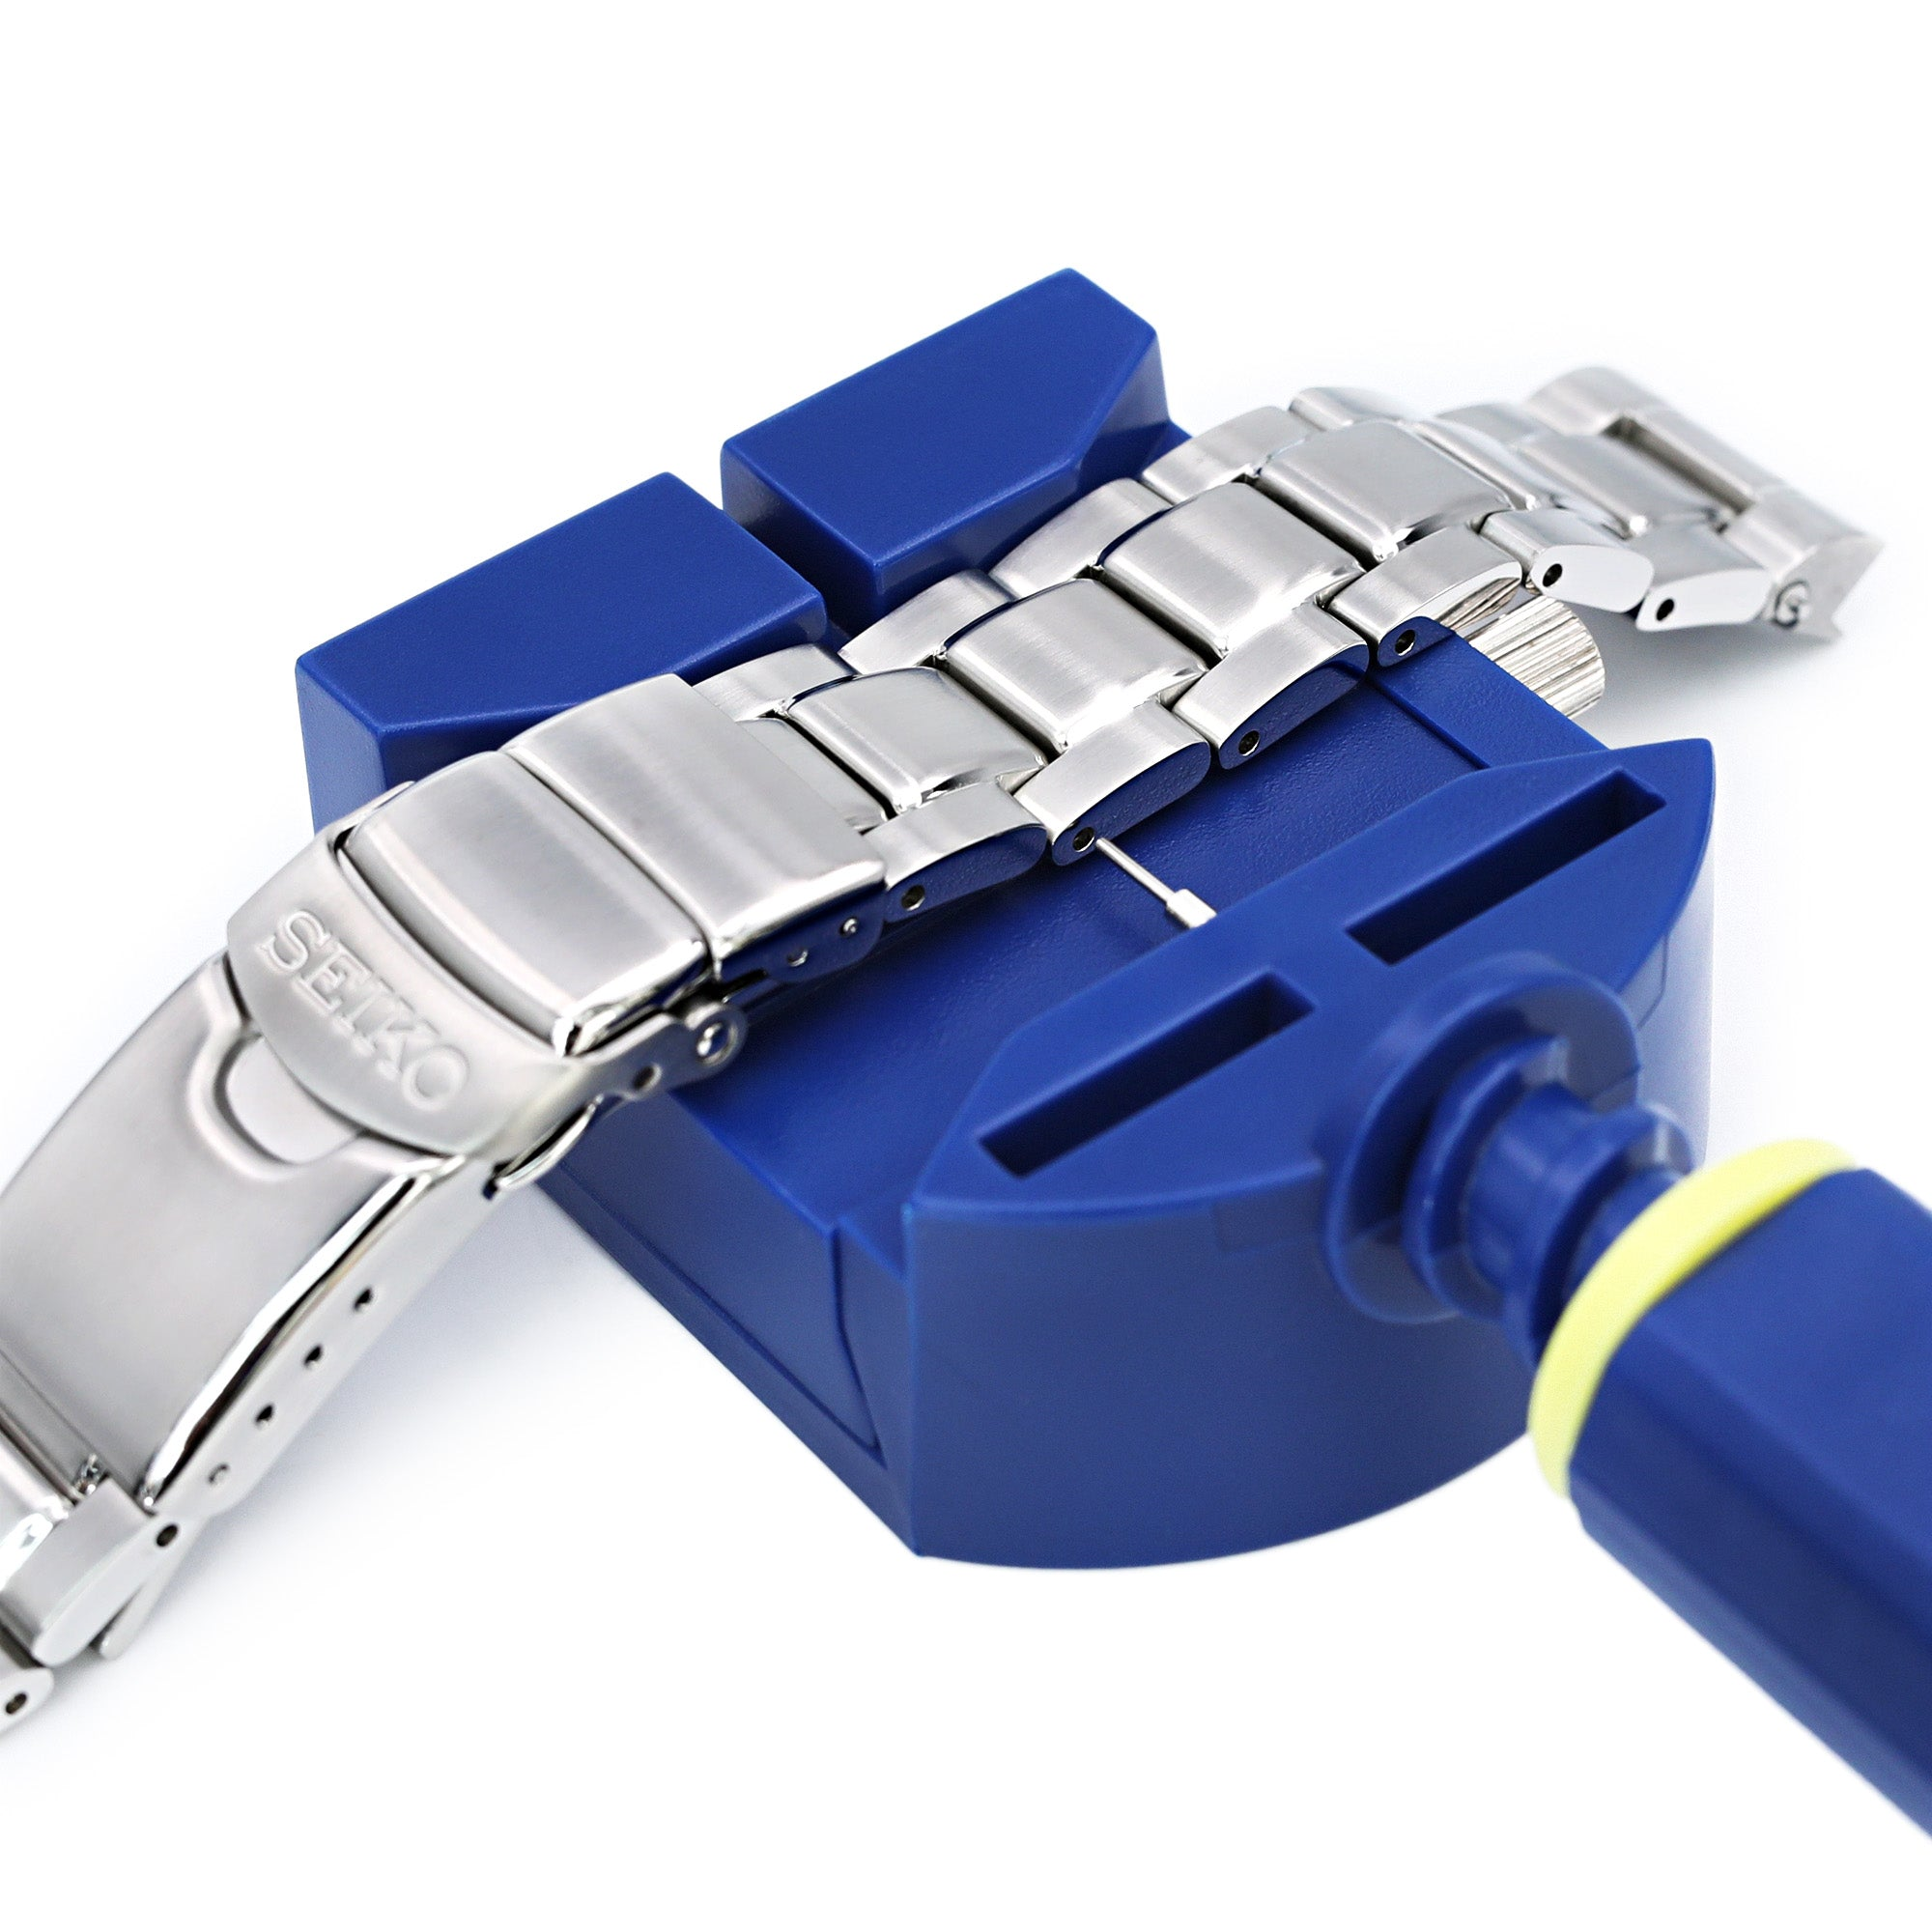 Watch bracelet link pin adjuster, link remover tool